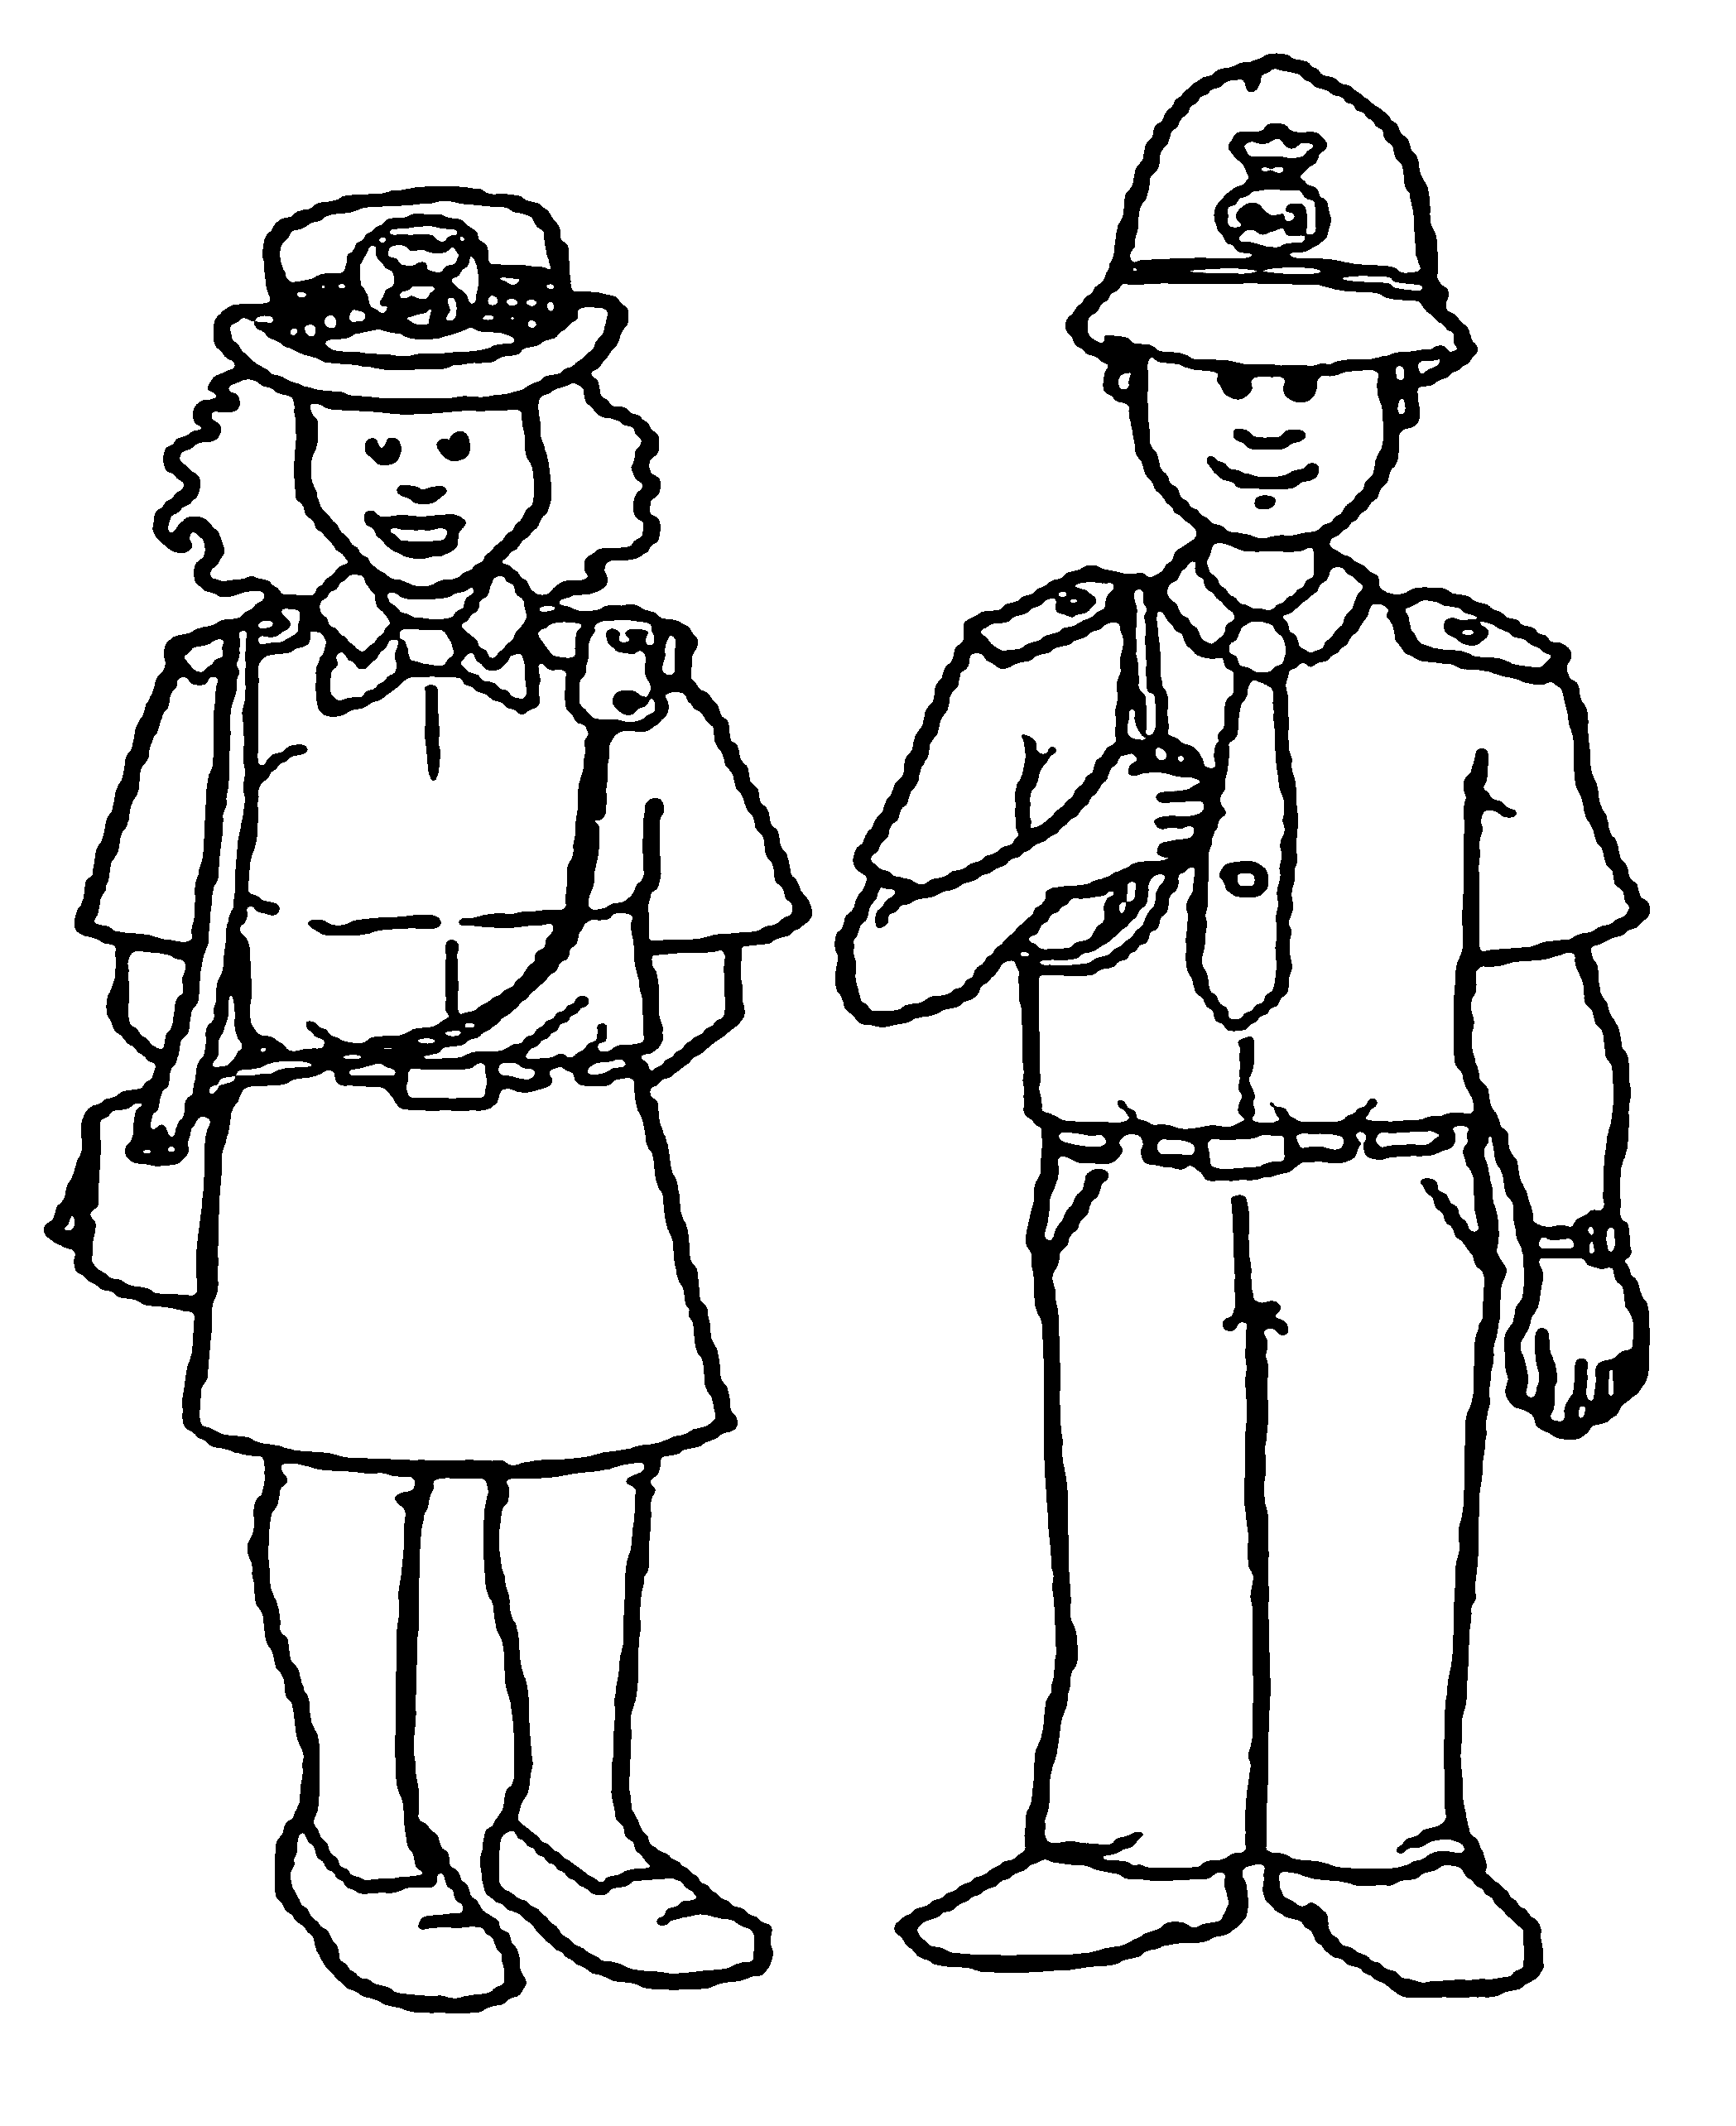 police pictures to color free printable policeman coloring pages for kids to pictures color police